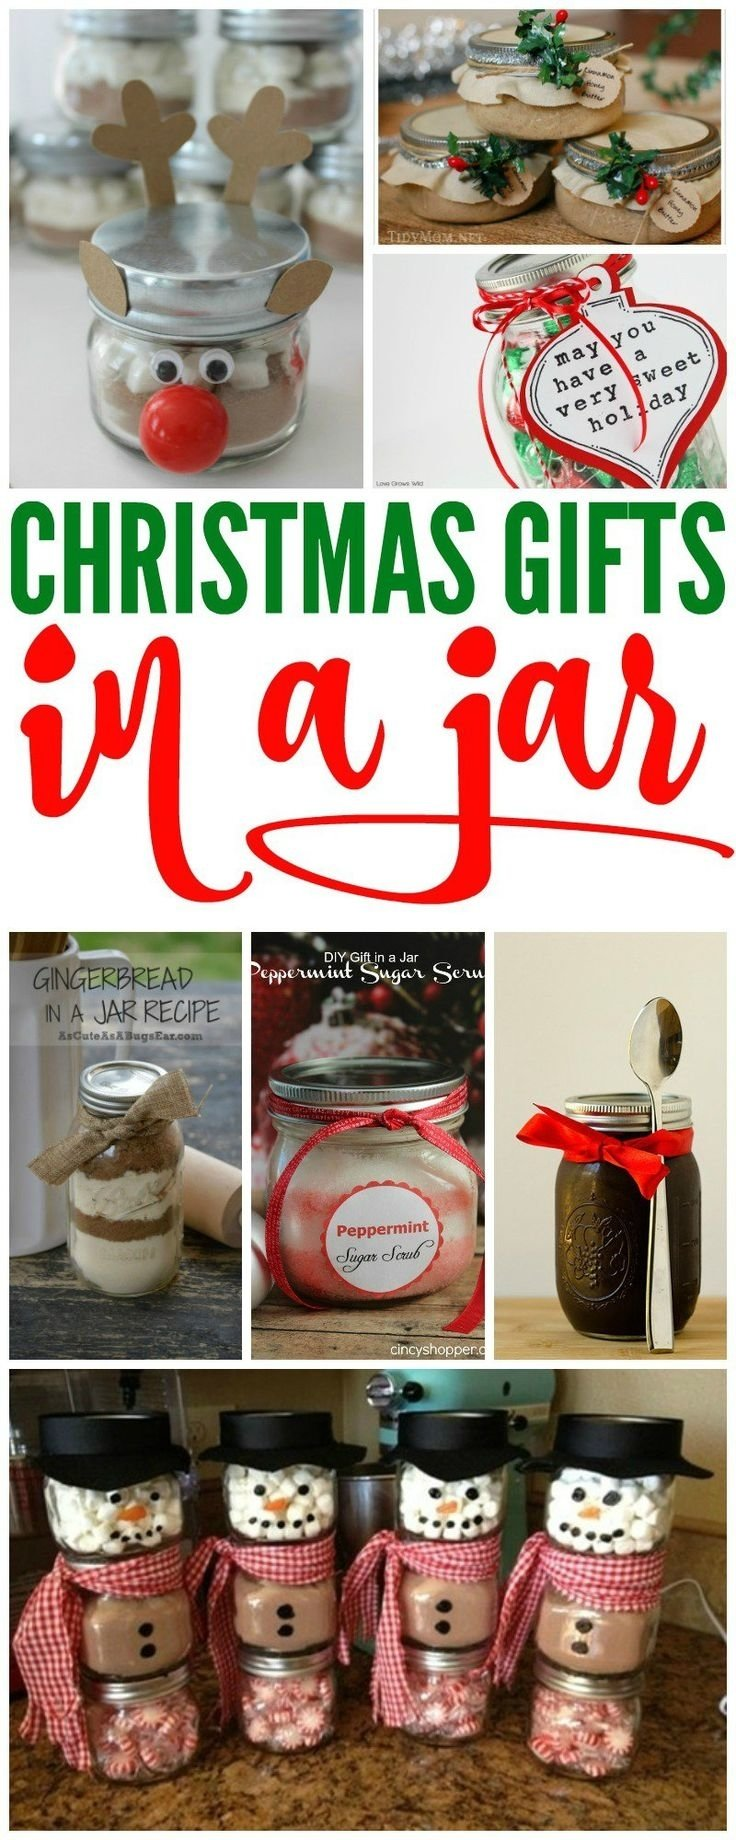 10 Cute Christmas Gift Ideas For Family Members 1034 best diy gift ideas images on pinterest hand made gifts 5